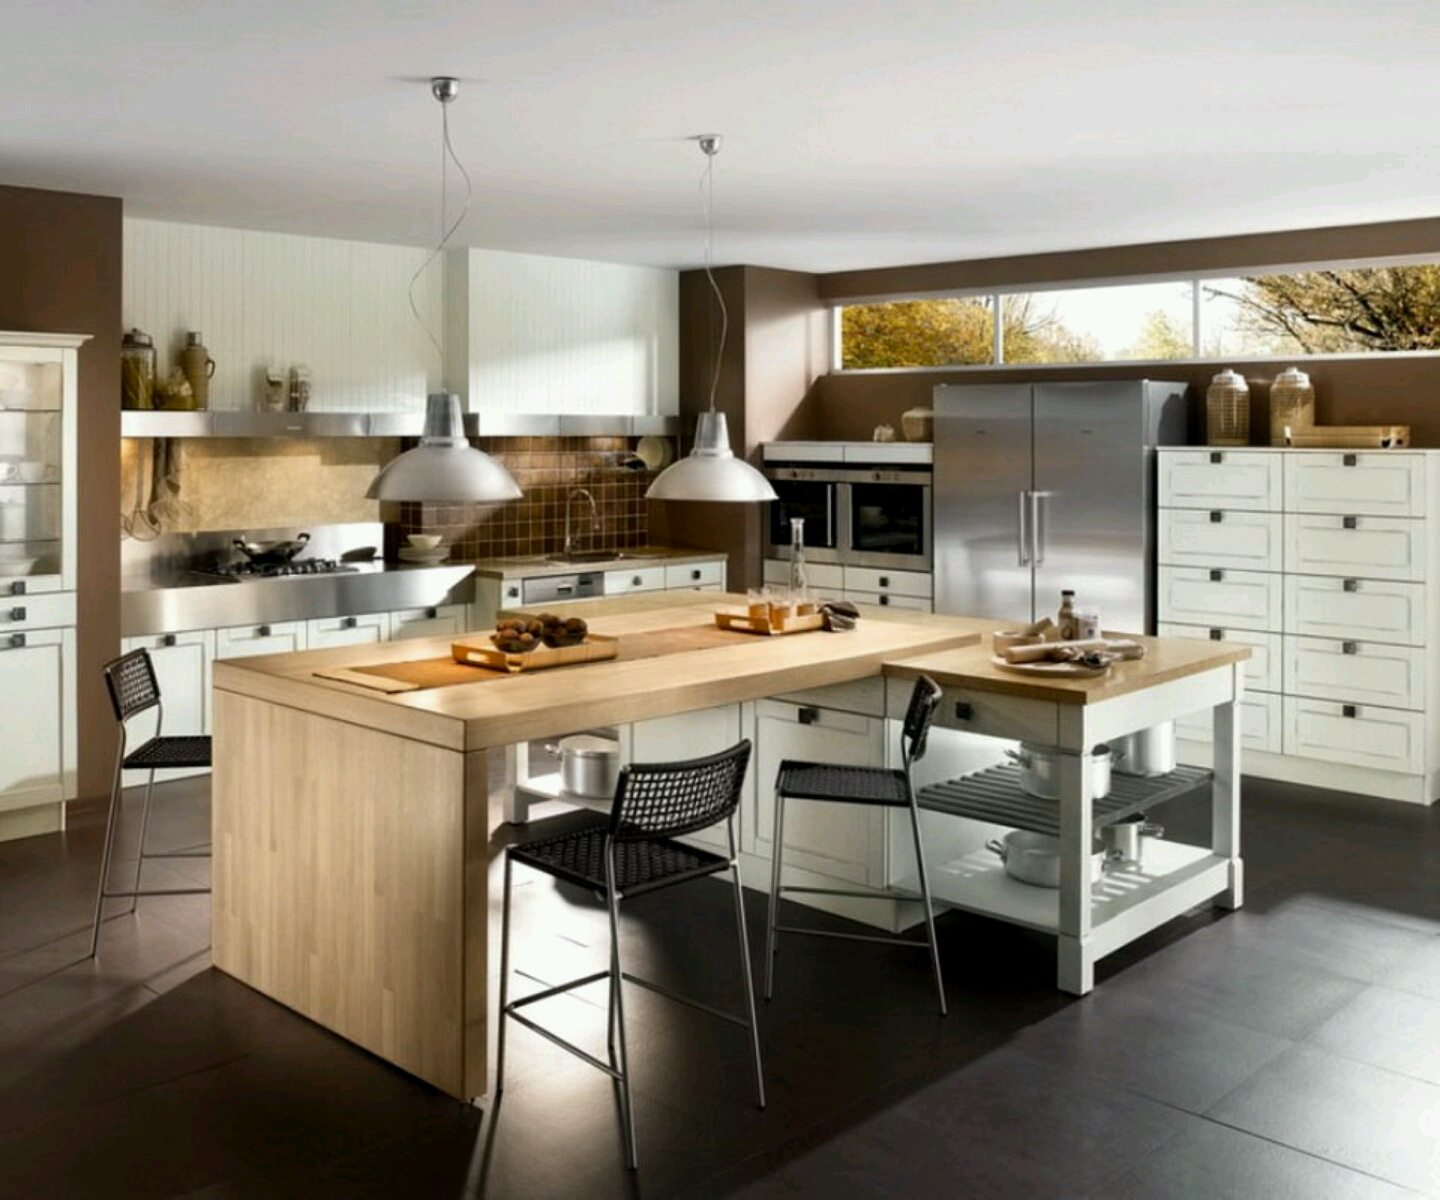 Design Ideas For Apartment Kitchens